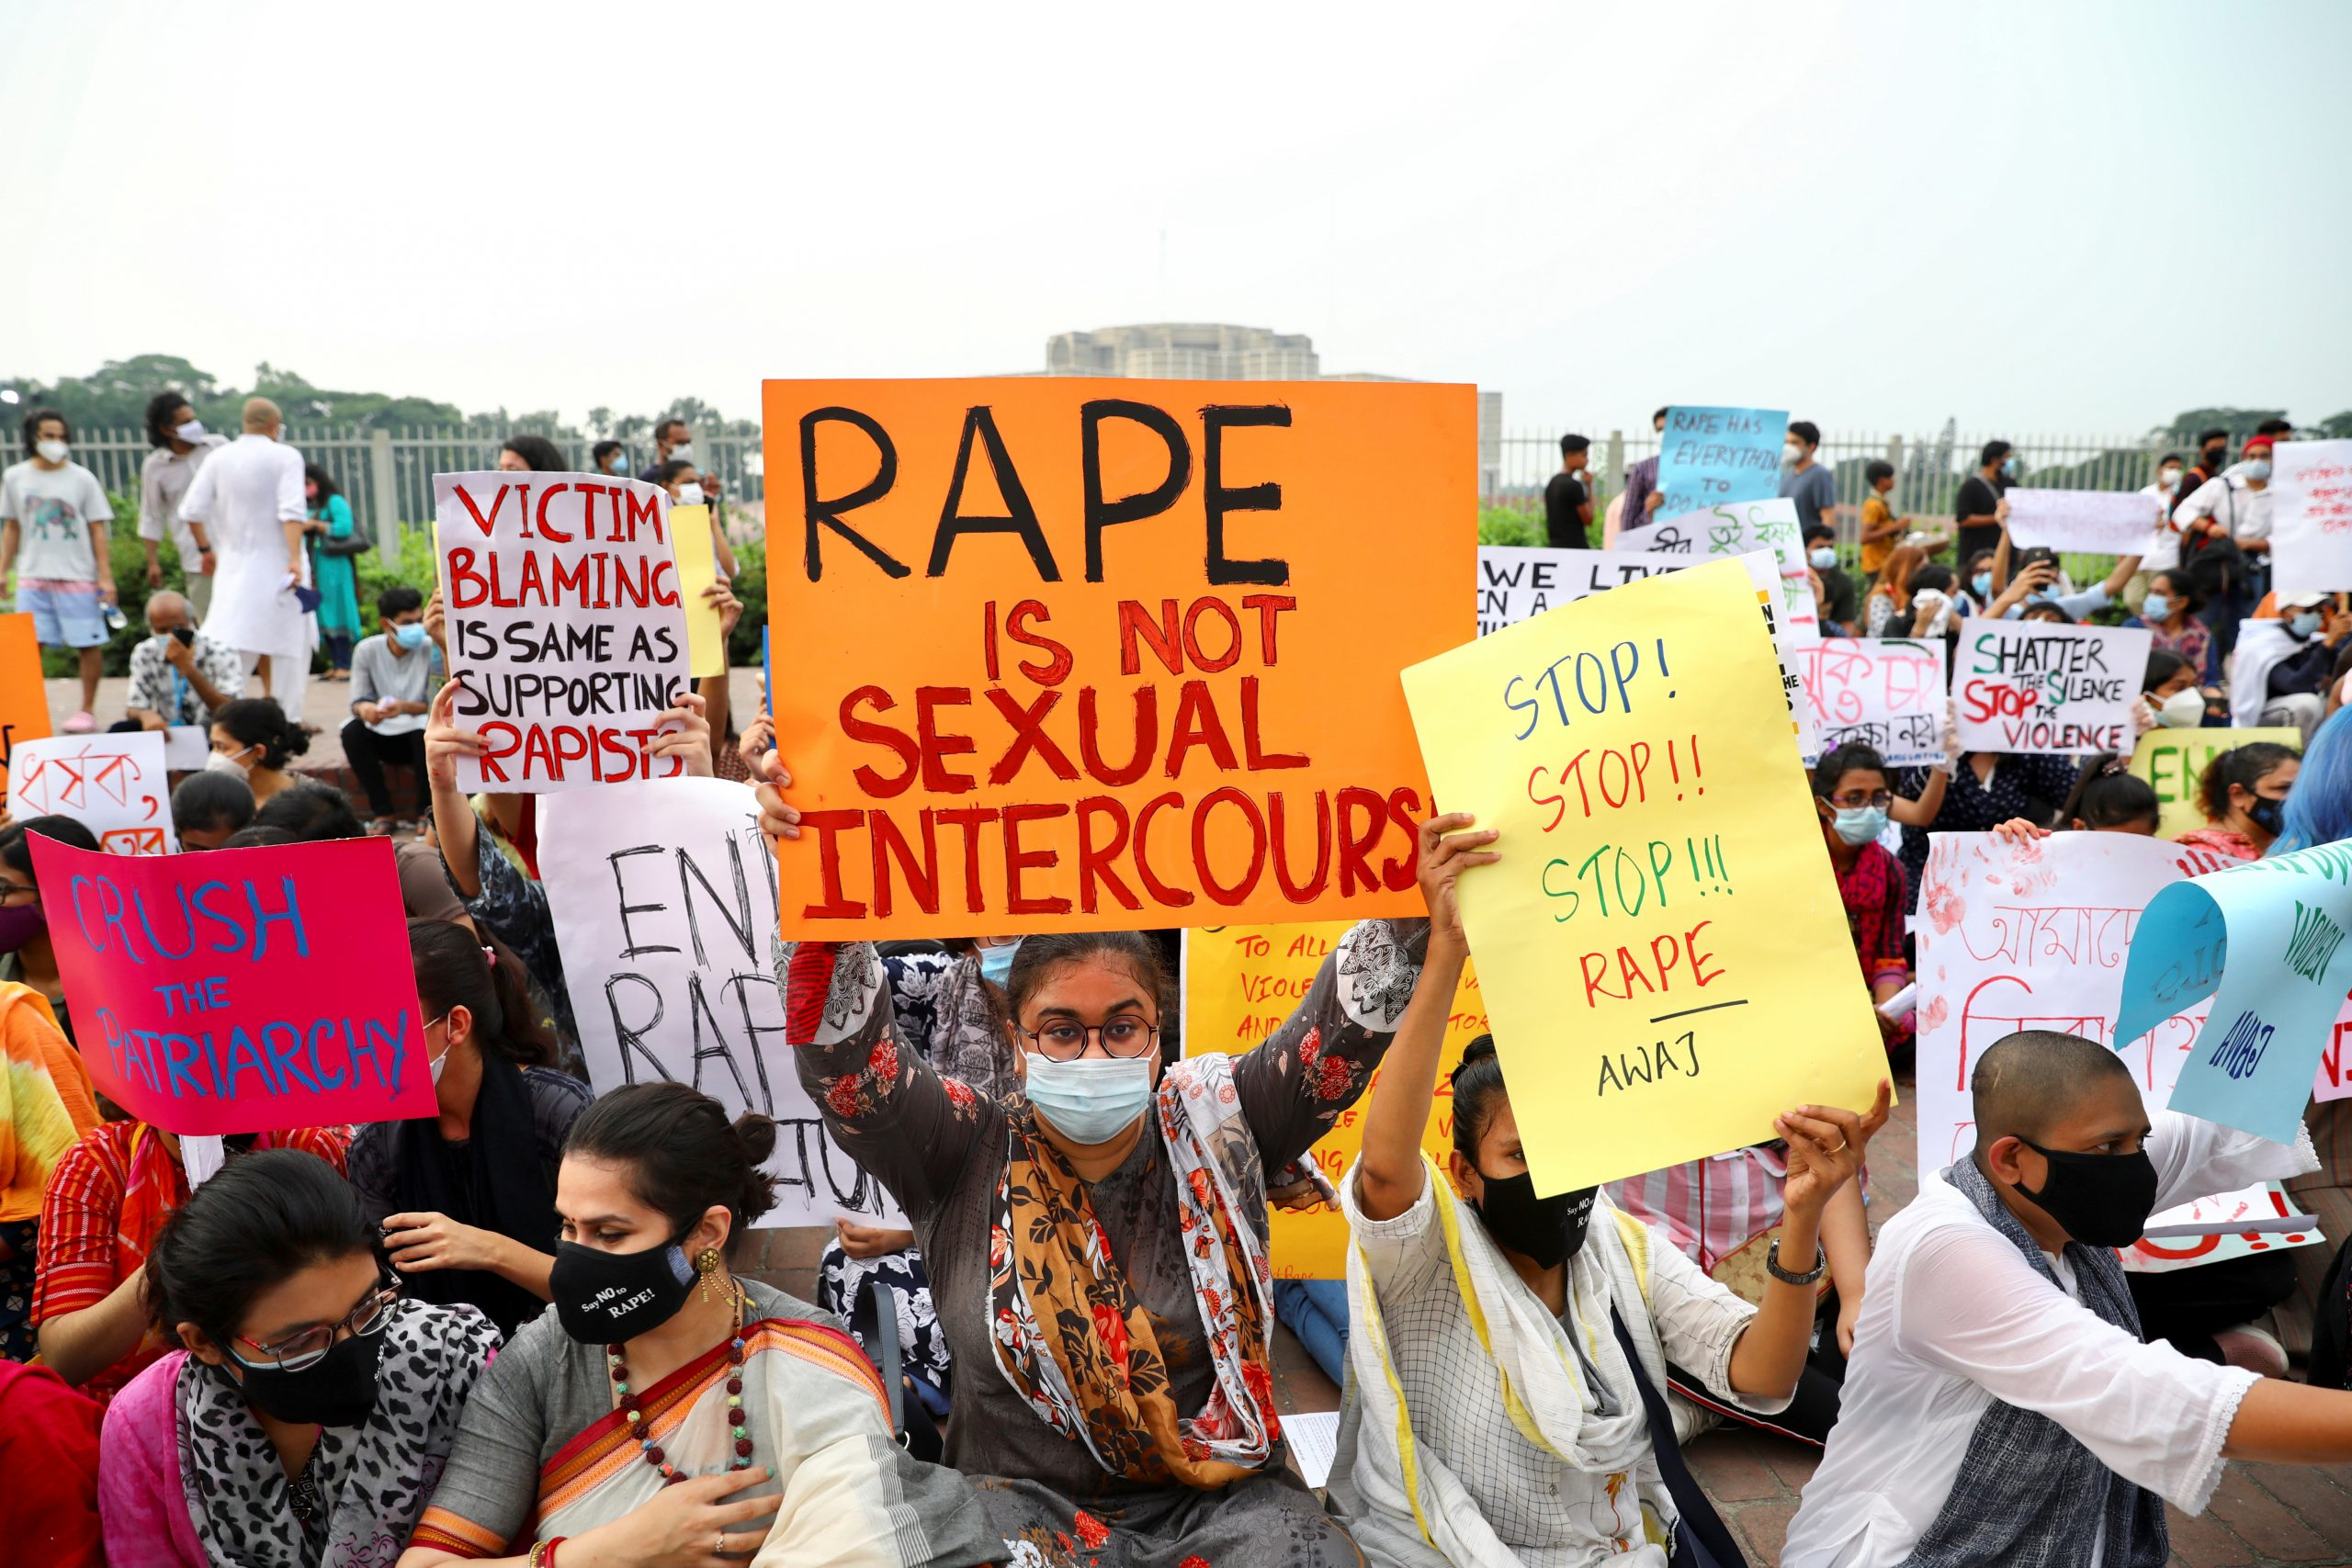 Bangladesh to introduce death penalty for rape